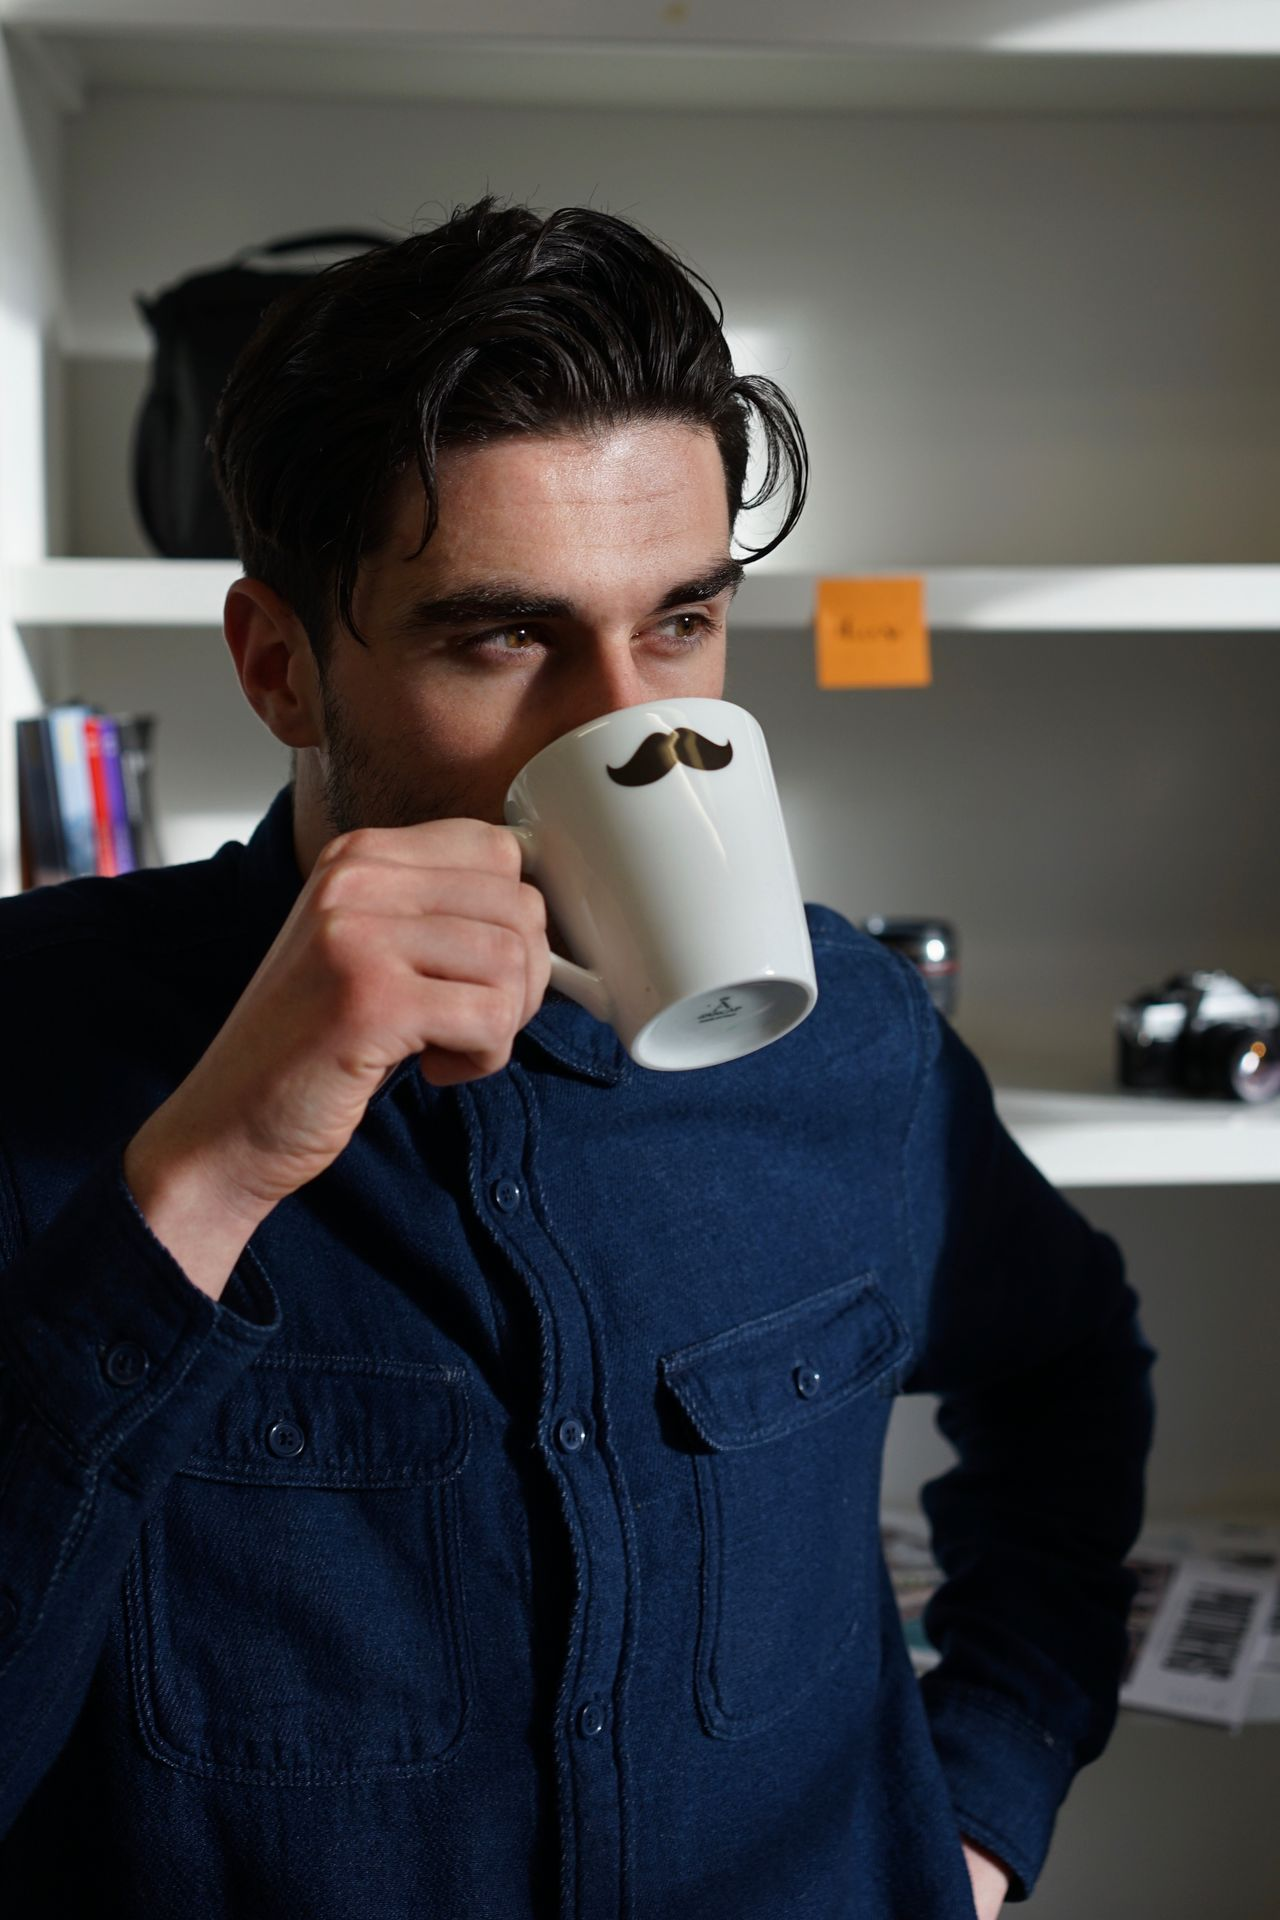 Coffee break. Adult Adults Only Brown Hair Close-up Coffee - Drink Coffee Cup Day Drink Drinking Front View Indoors  Men Mug One Man Only One Person One Young Man Only Only Men People Portrait Waist Up Young Adult Young Men